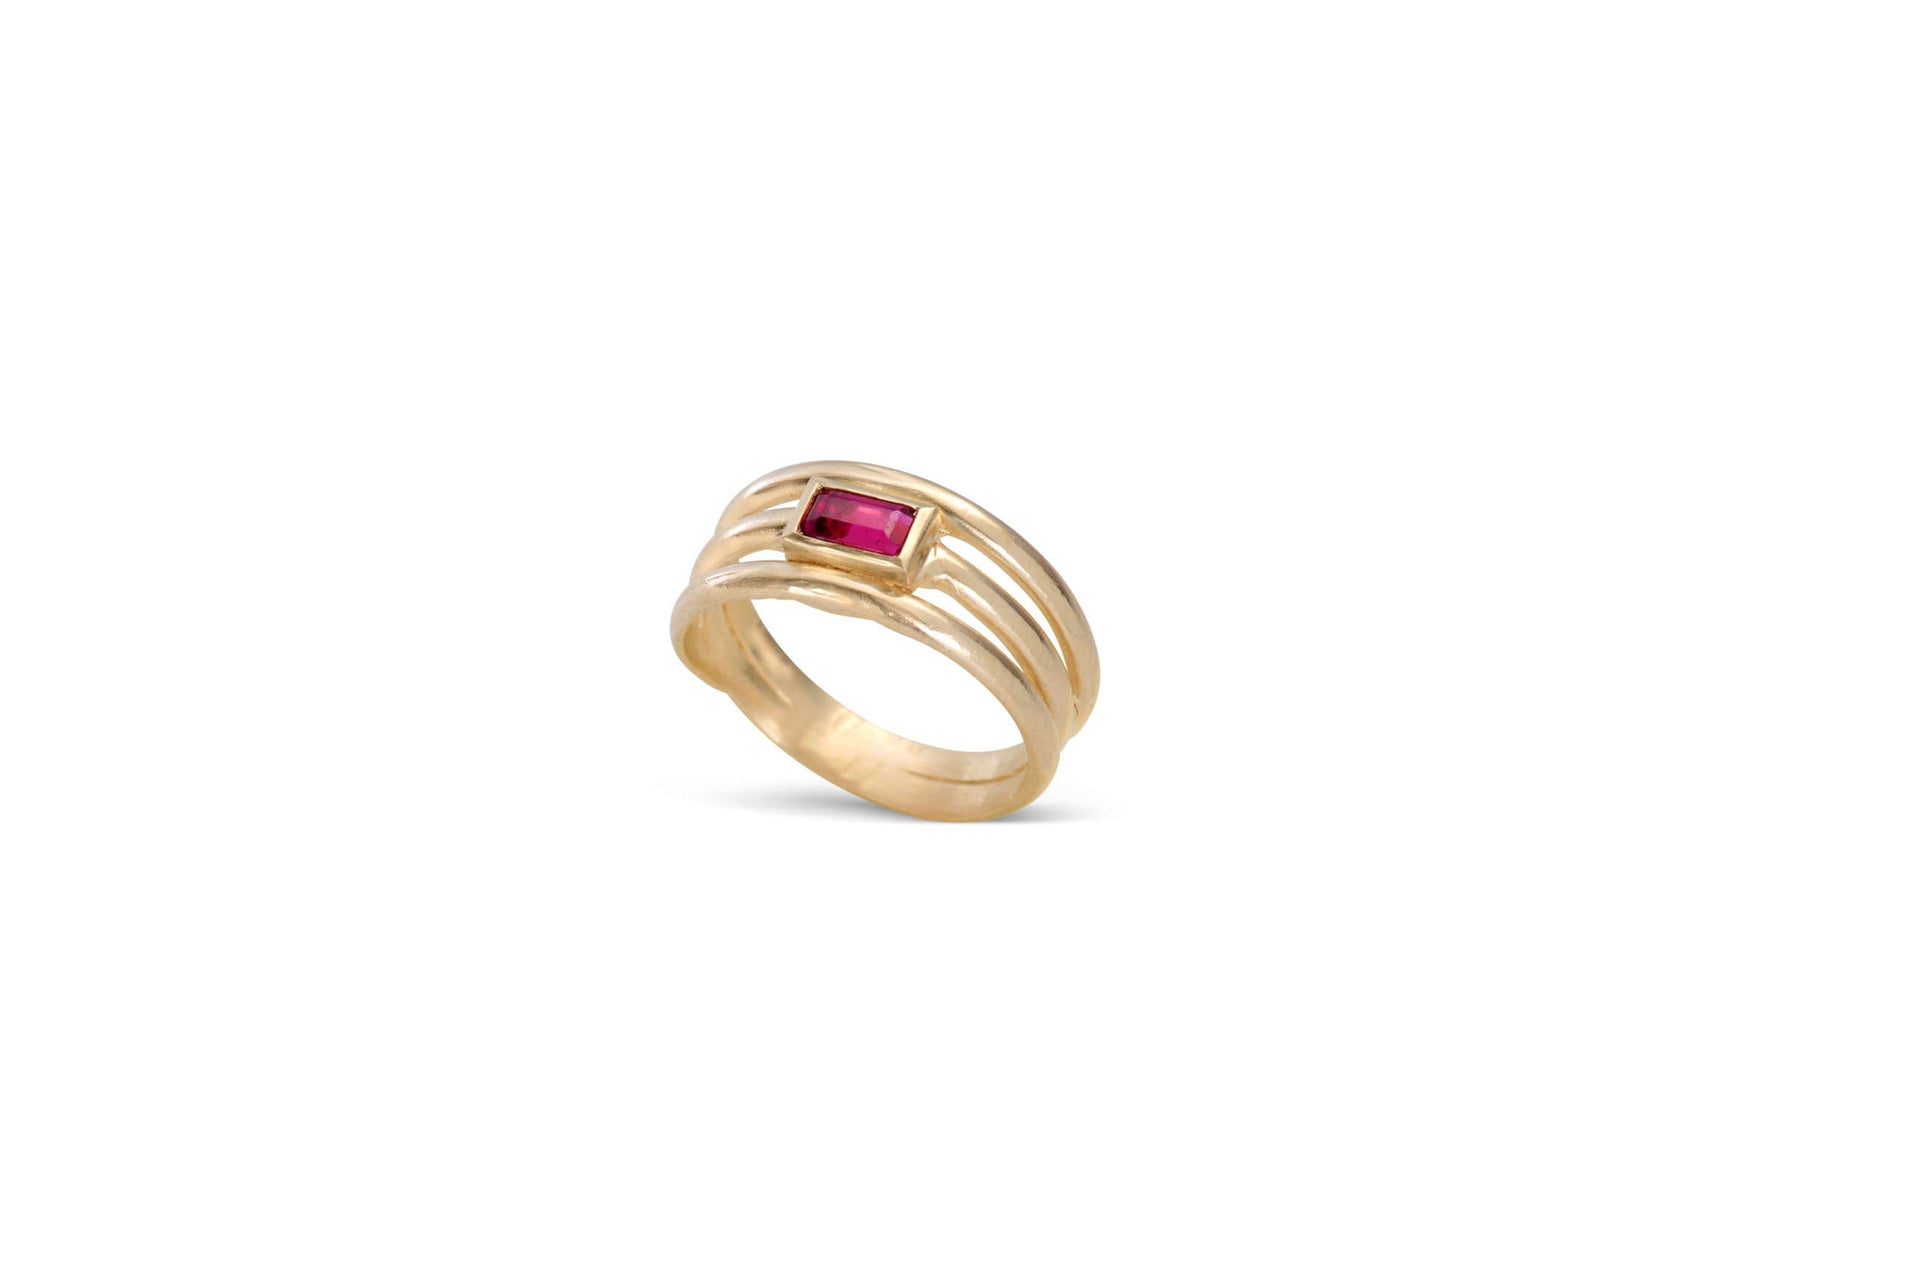 14kt yellow gold emerald cut pink tourmaline ring